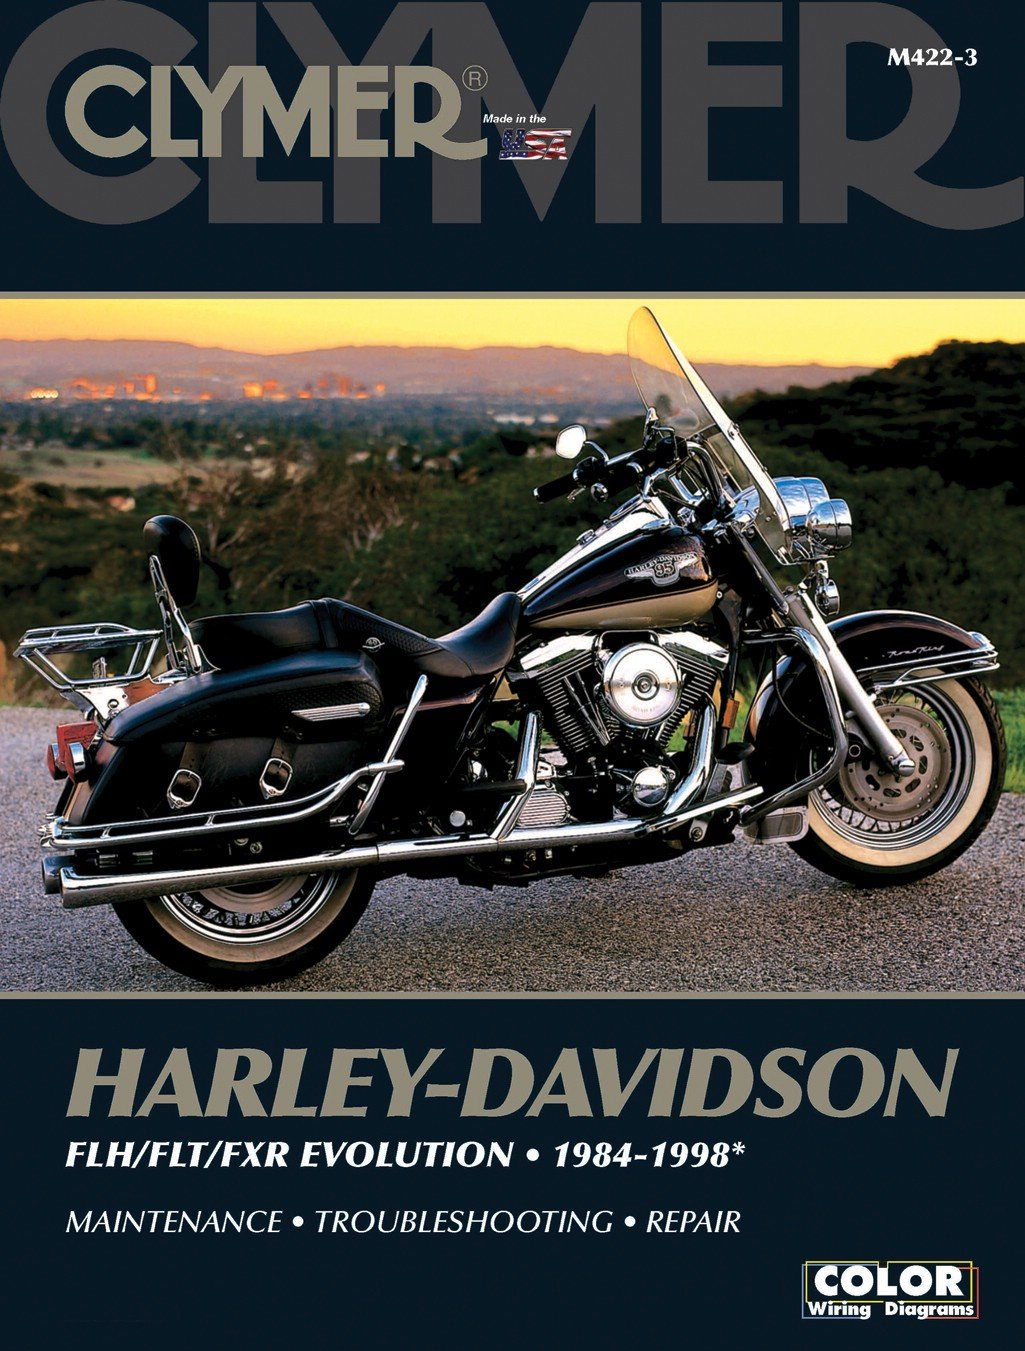 Clymer Manual Harley Davidson Flhfltfxr Evolution 84 98 Each Flh Wiring Diagram Car Motorbike